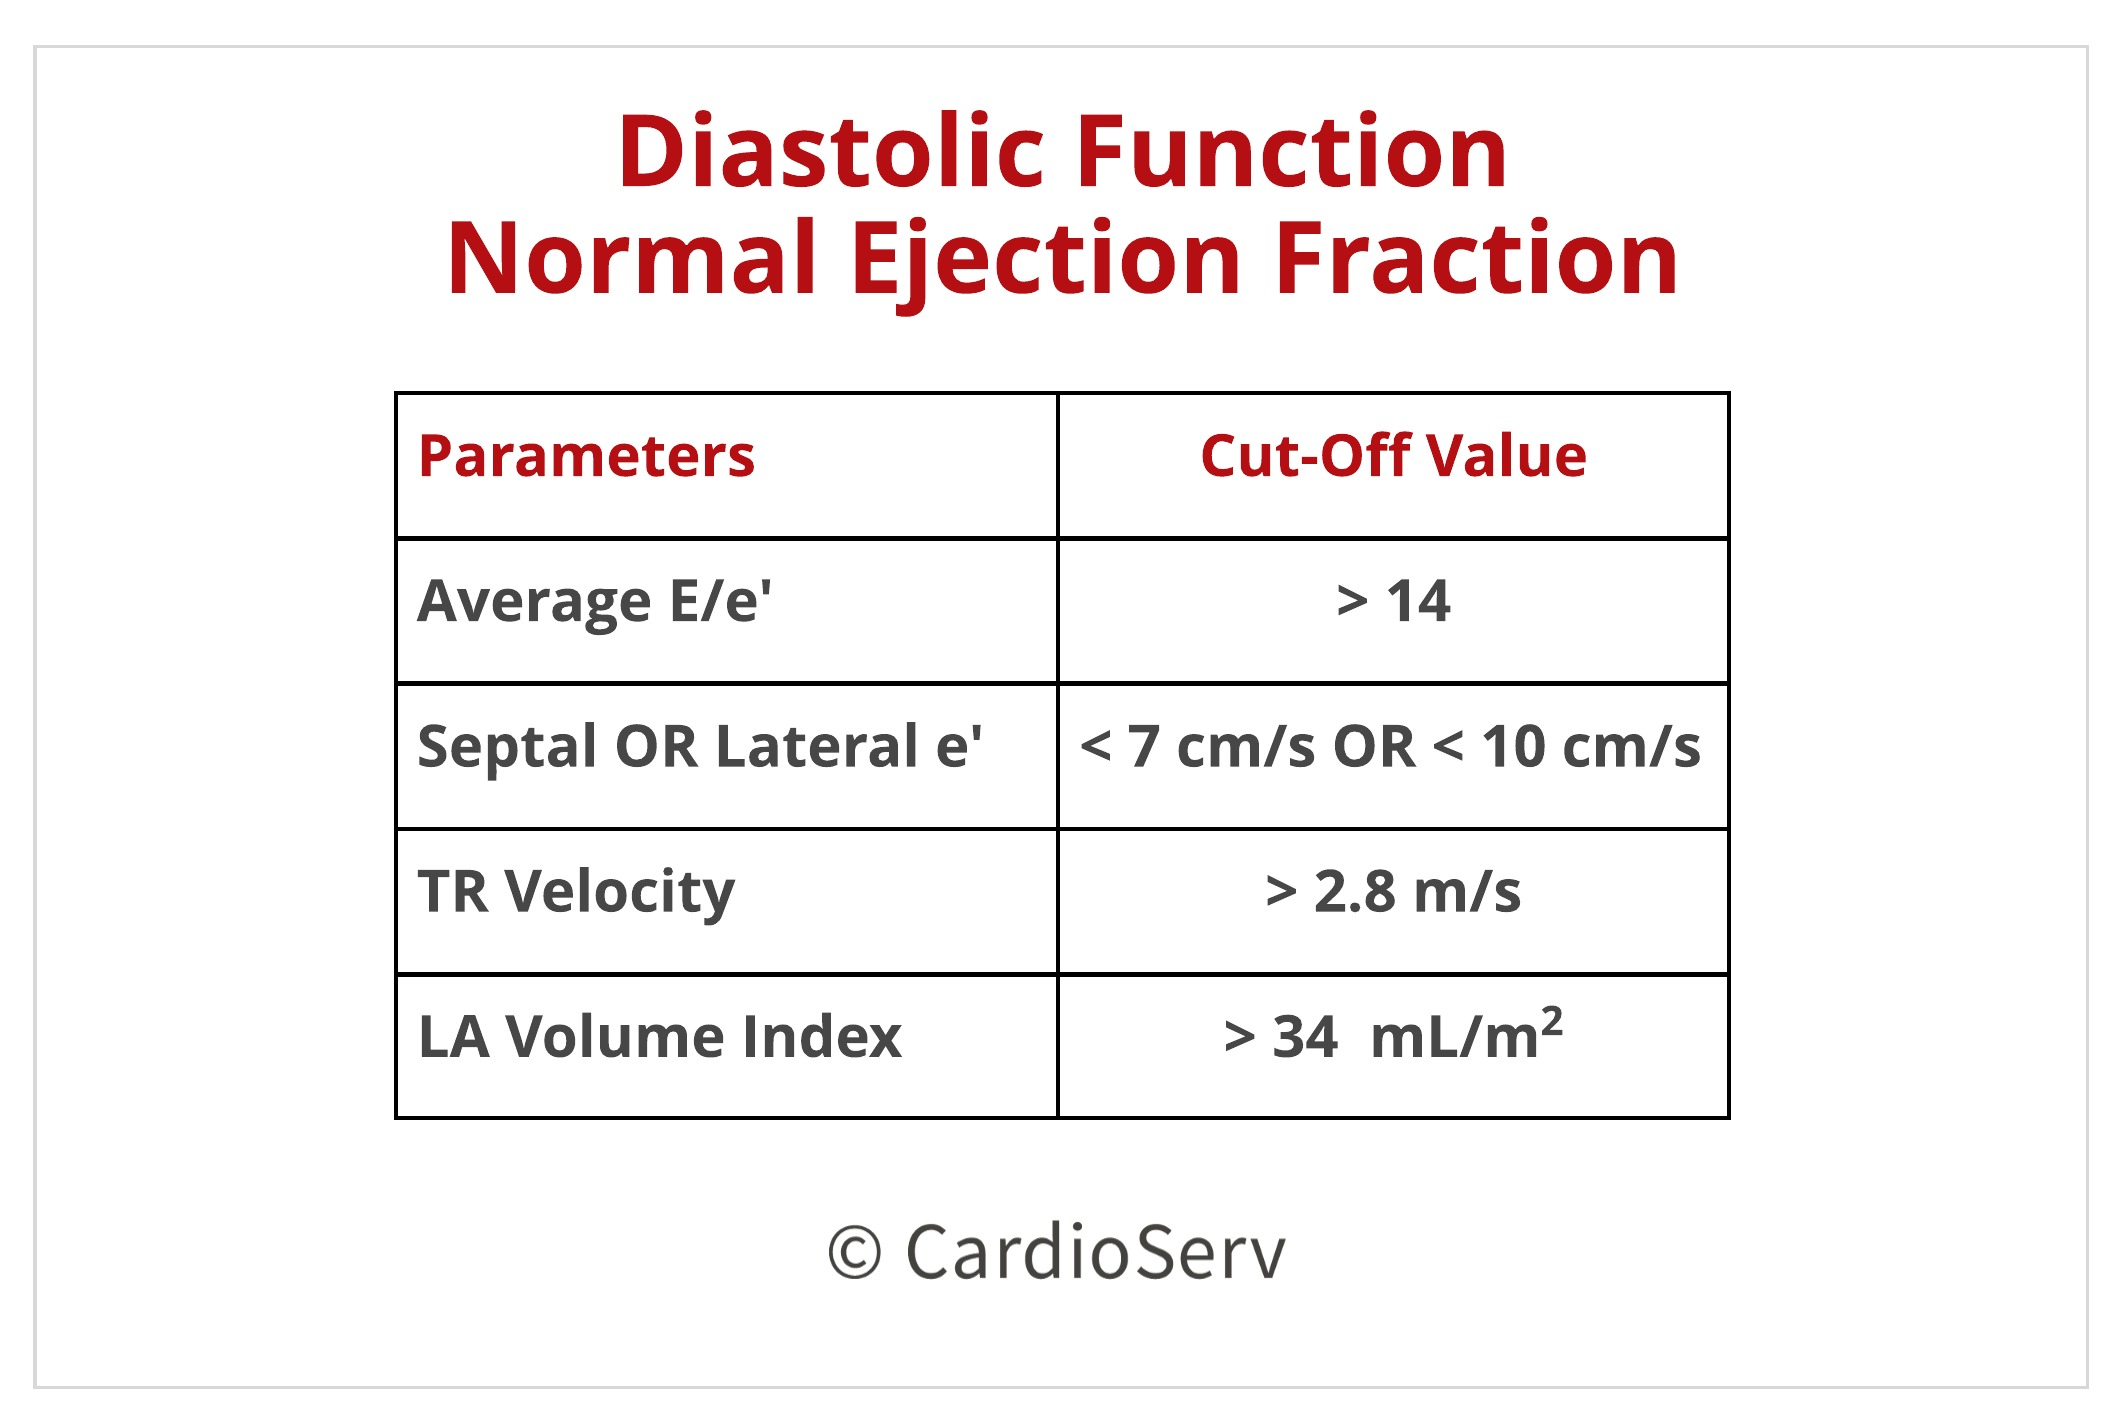 Normal Ejection Fraction Cutoff values for LV diastolic Function